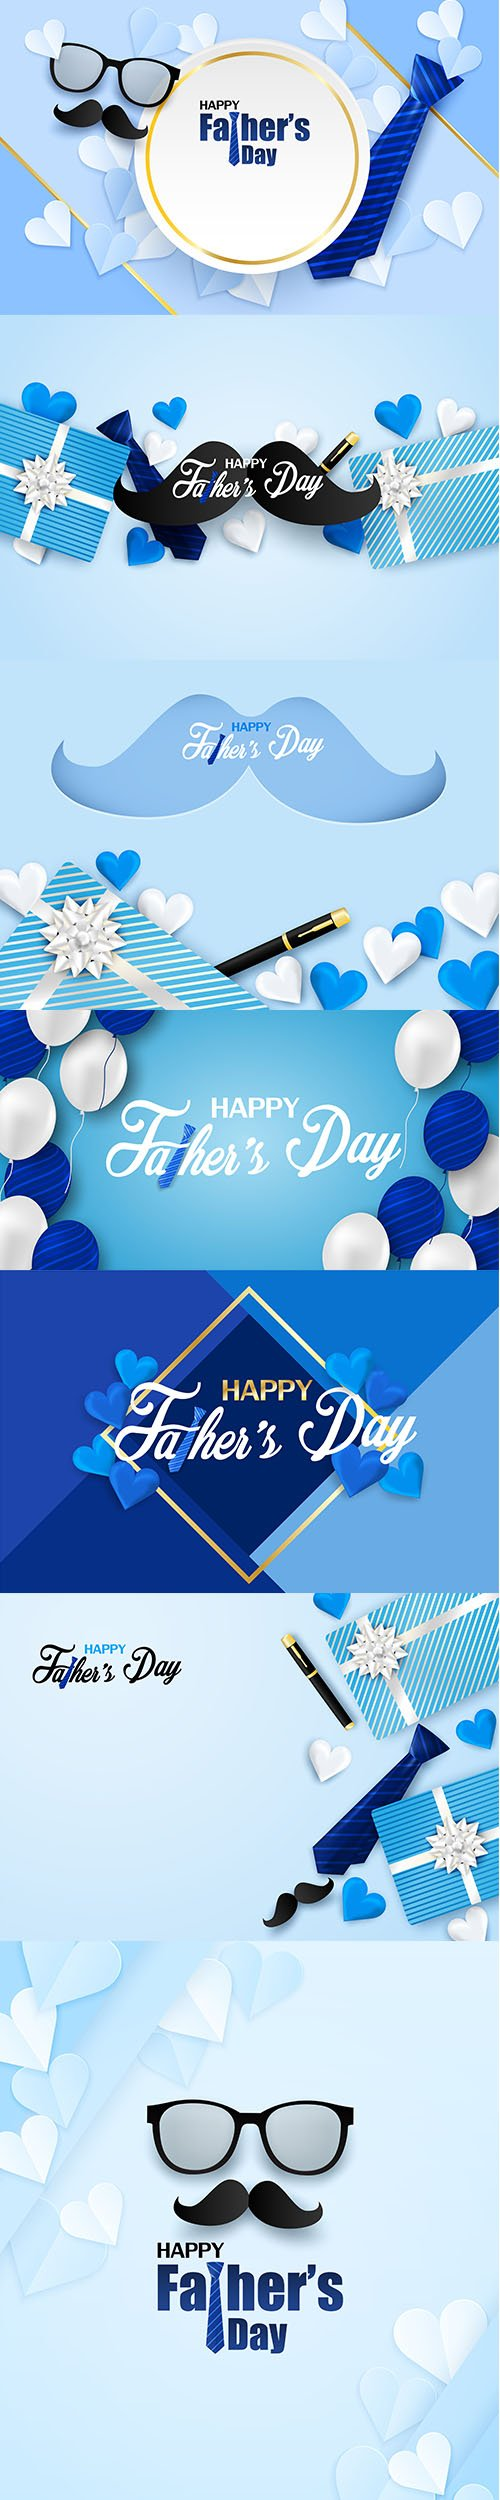 Backgrounds - Happy Fathers Day